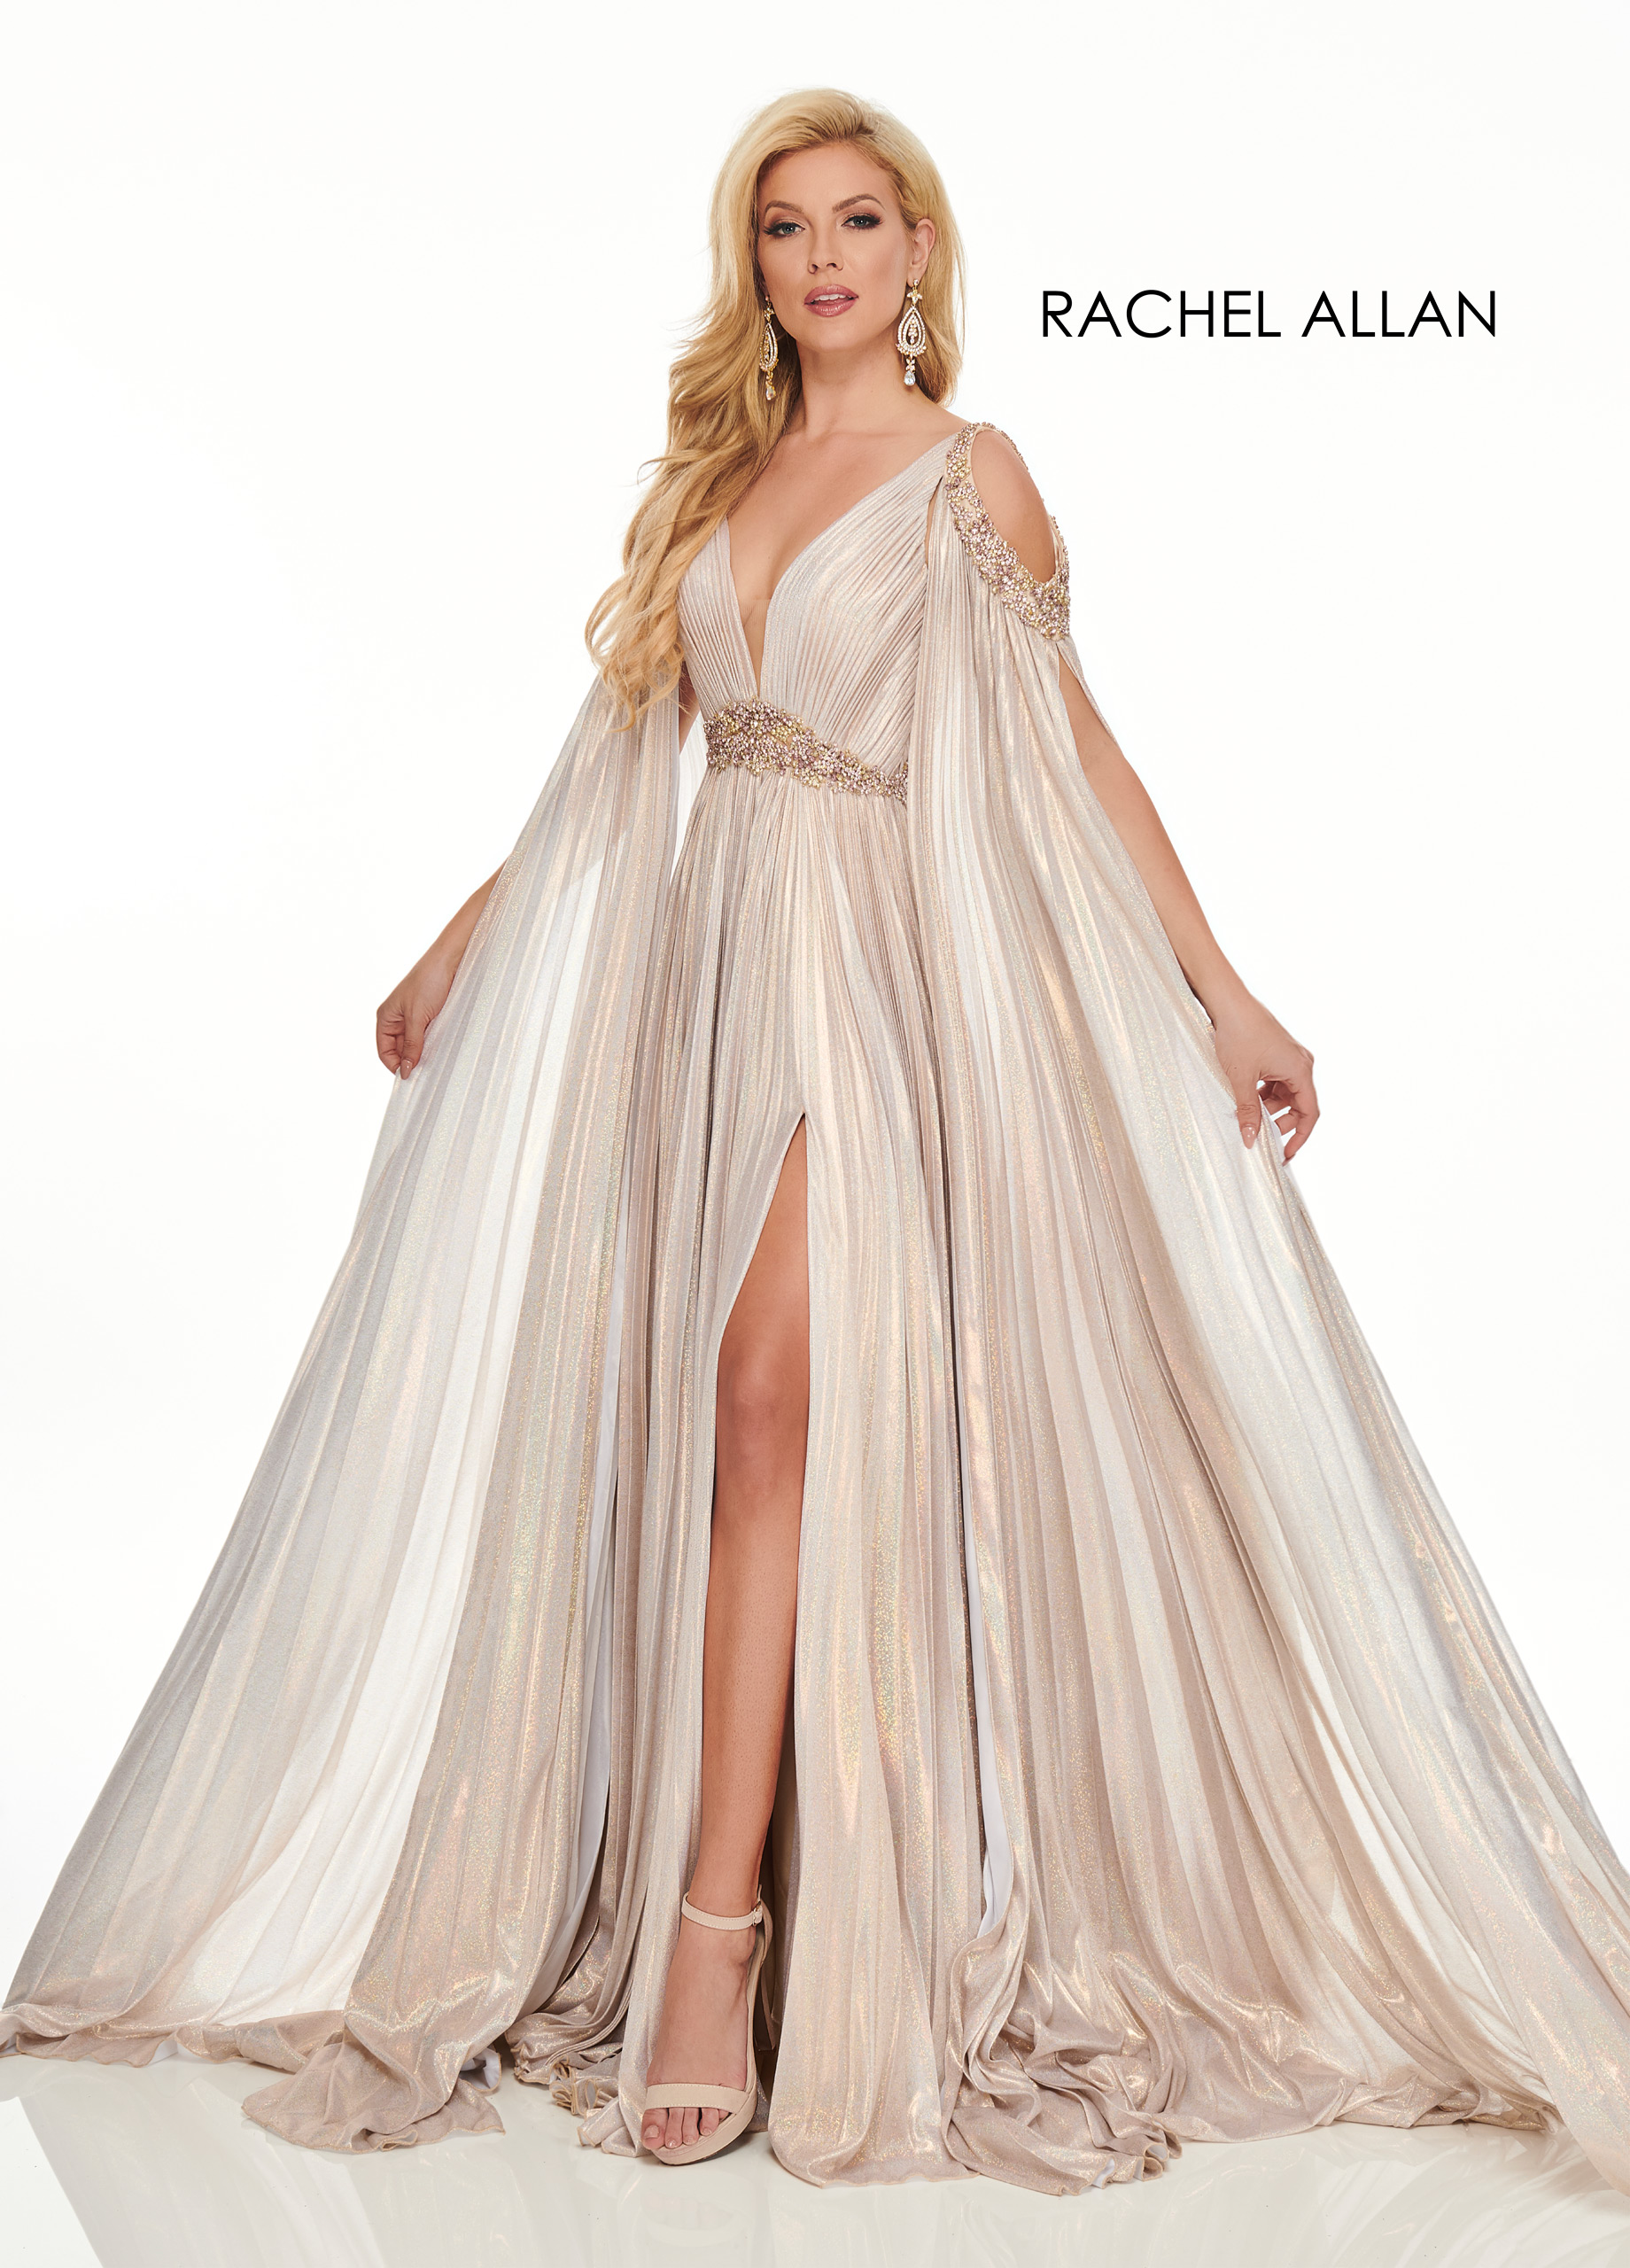 V-Neck A-Line Couture Dresses in Champagne Color